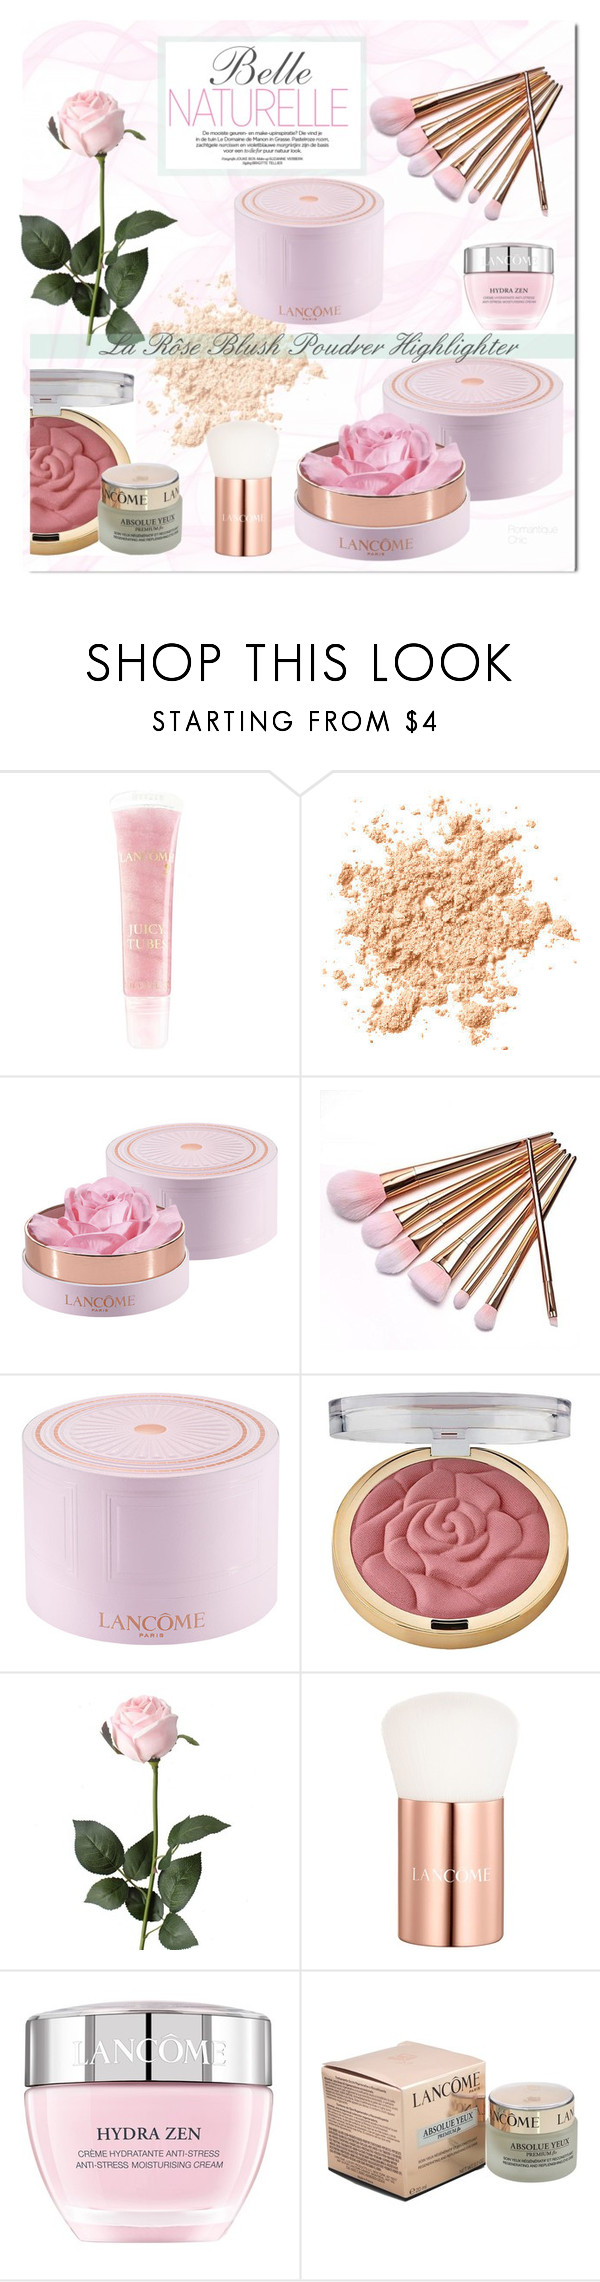 """~ La Rôse Blush Poudrer Highlighter~"" by romantiquechic ❤ liked on Polyvore featuring beauty, Lancôme and Milani"